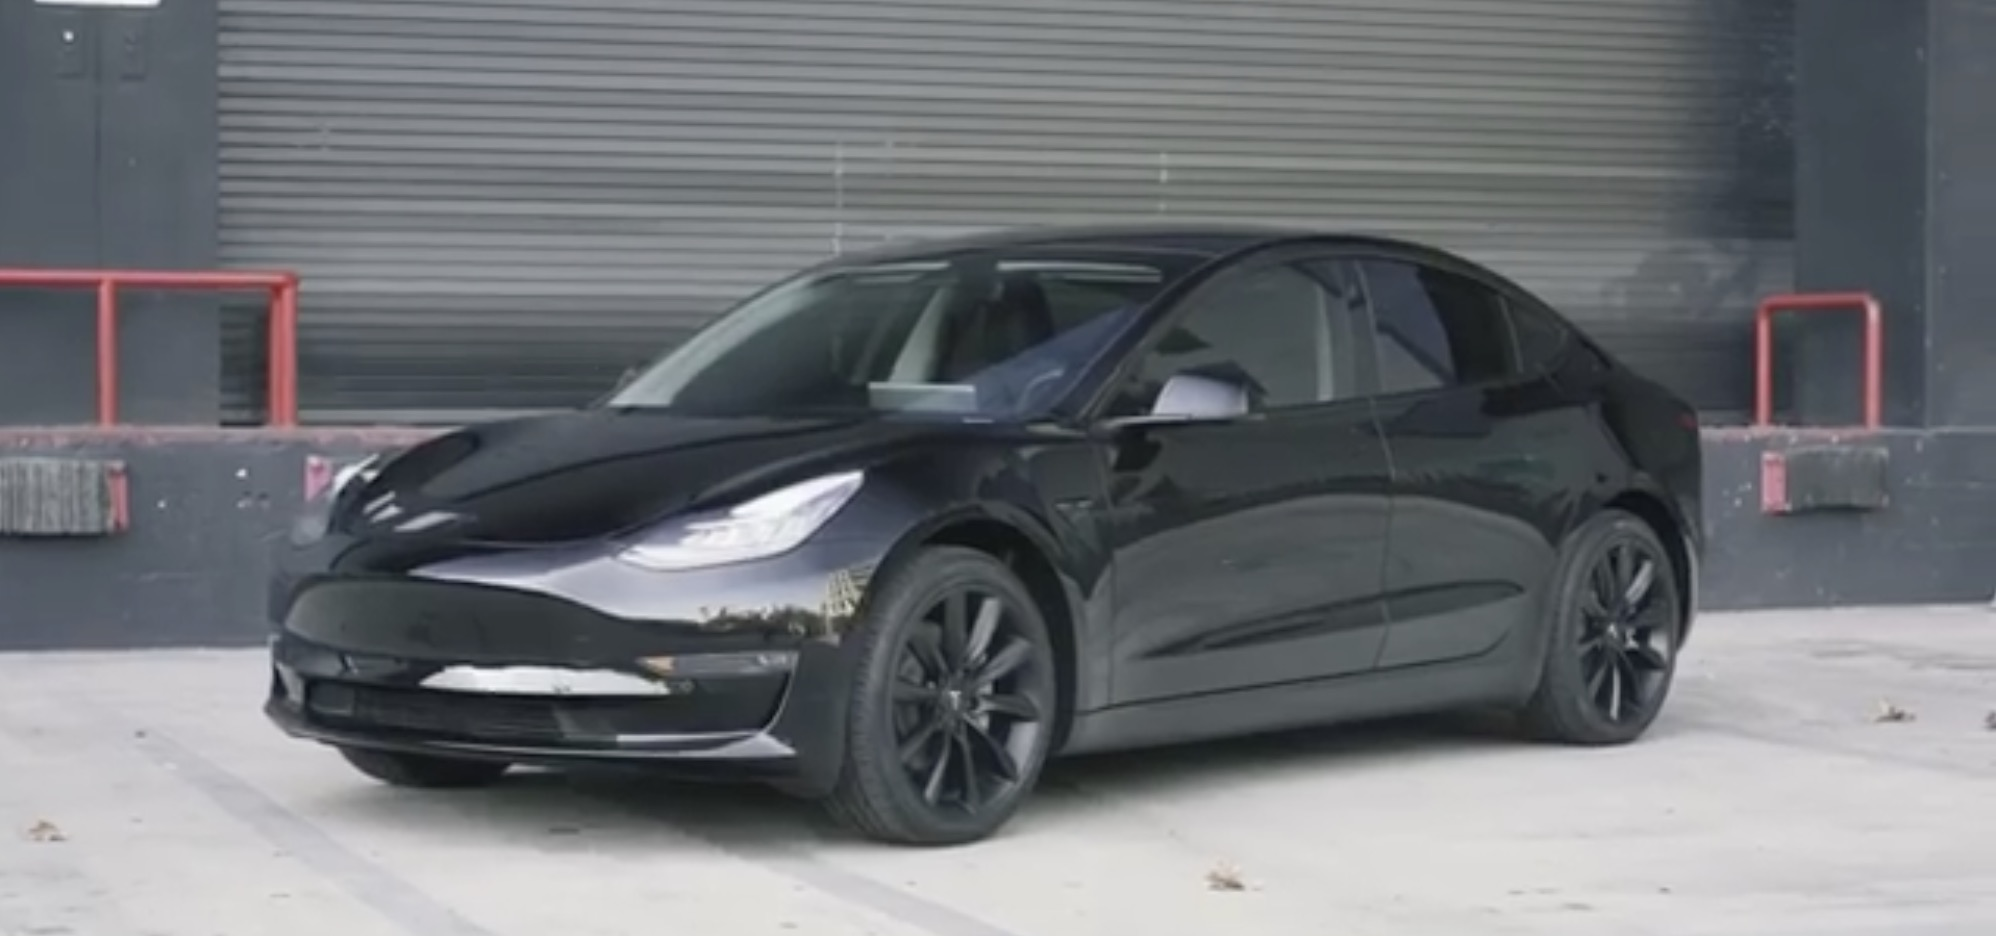 Tesla Model 3 looks badass with aftermarket chrome delete, tint and wheels